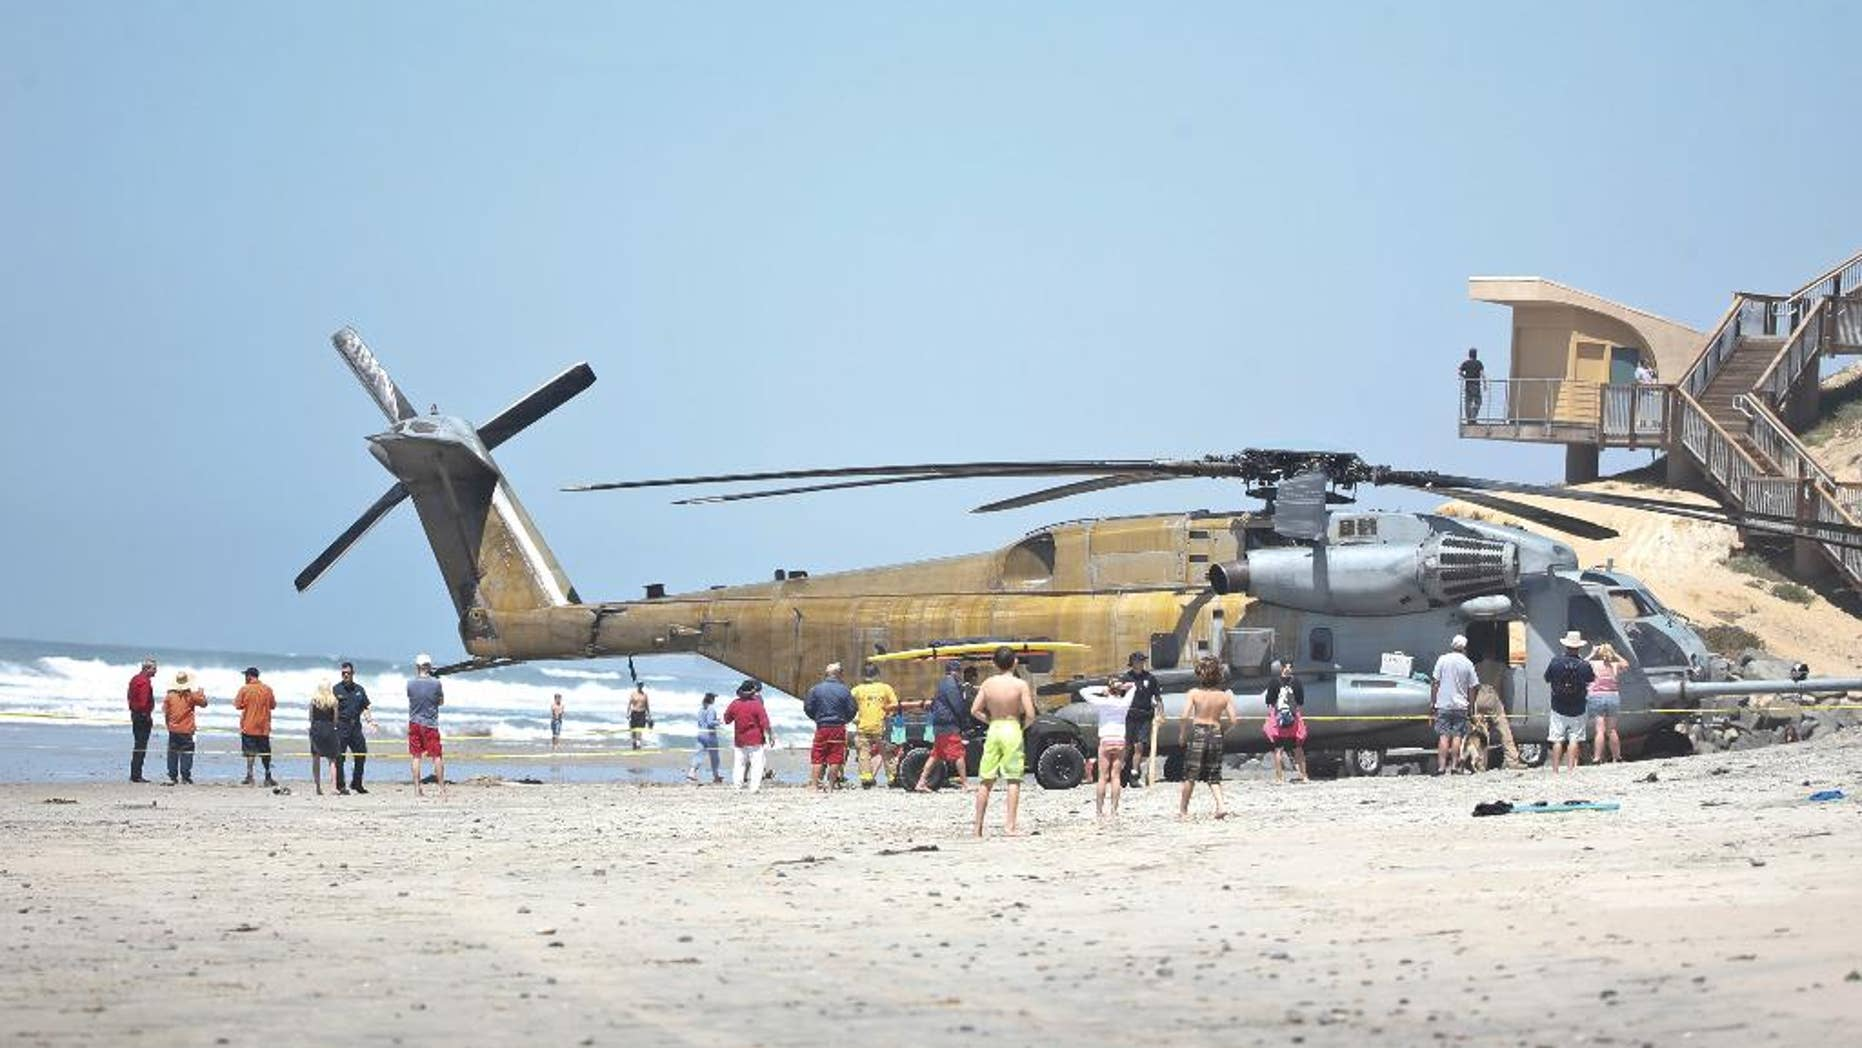 FILE -In this Wednesday, April 15, 2015 file photo, a Marine Corps CH-53E helicopter sits in the sand where it made an emergency landing in Solana Beach, Calif. One Marine has been killed and 9 others were hurt when a helicopter made a hard landing at Camp Lejeune in North Carolina, Wednesday night, Sept. 2, 2015. (AP Photo/Lenny Ignelzi, File)